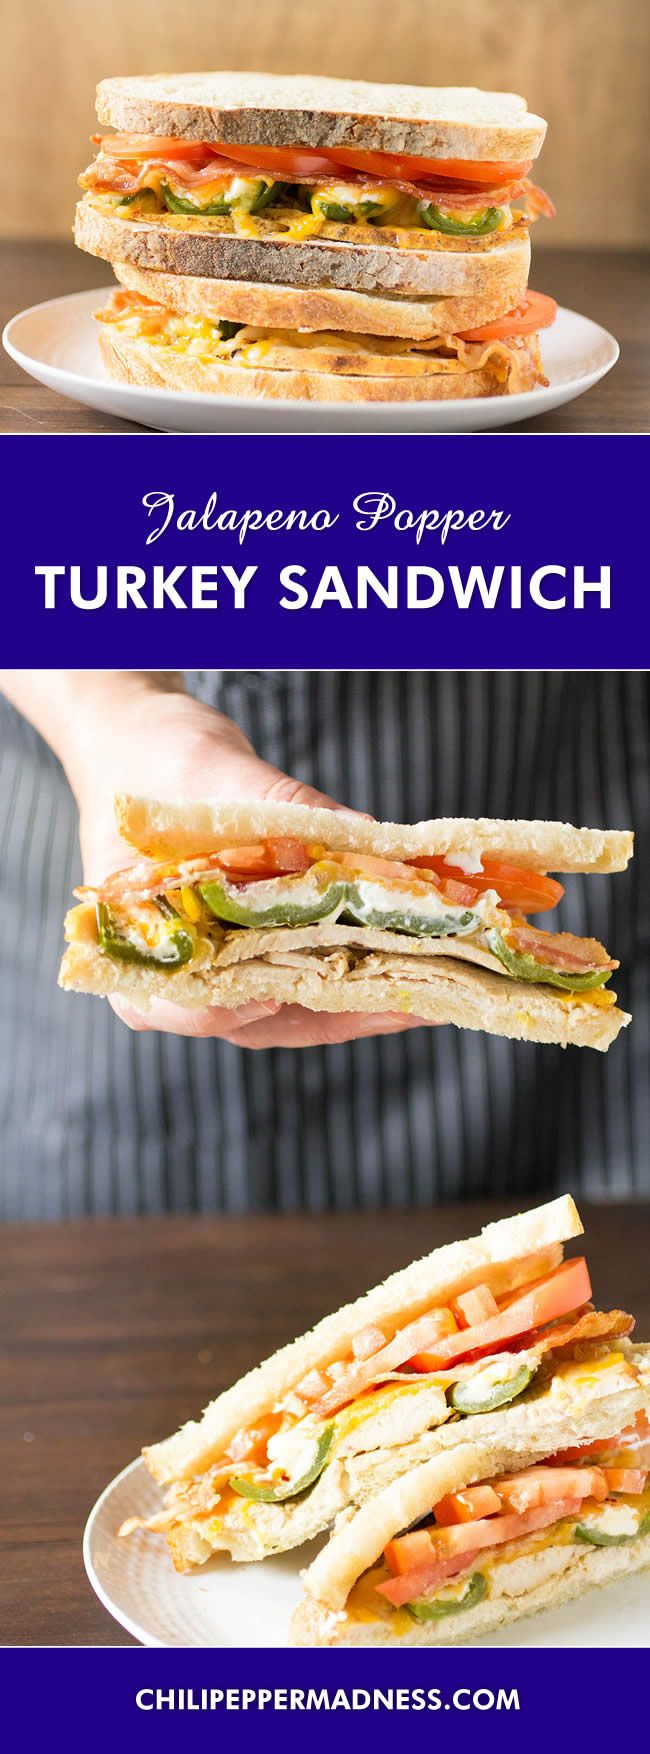 Cheesy Jalapeno Popper-Turkey Sandwiches - A tasty turkey sandwich recipe made with layers of cream cheese, oven roasted turkey, melted cheese, stuffed jalapeno poppers, bacon and tomato. Perfect for leftovers!